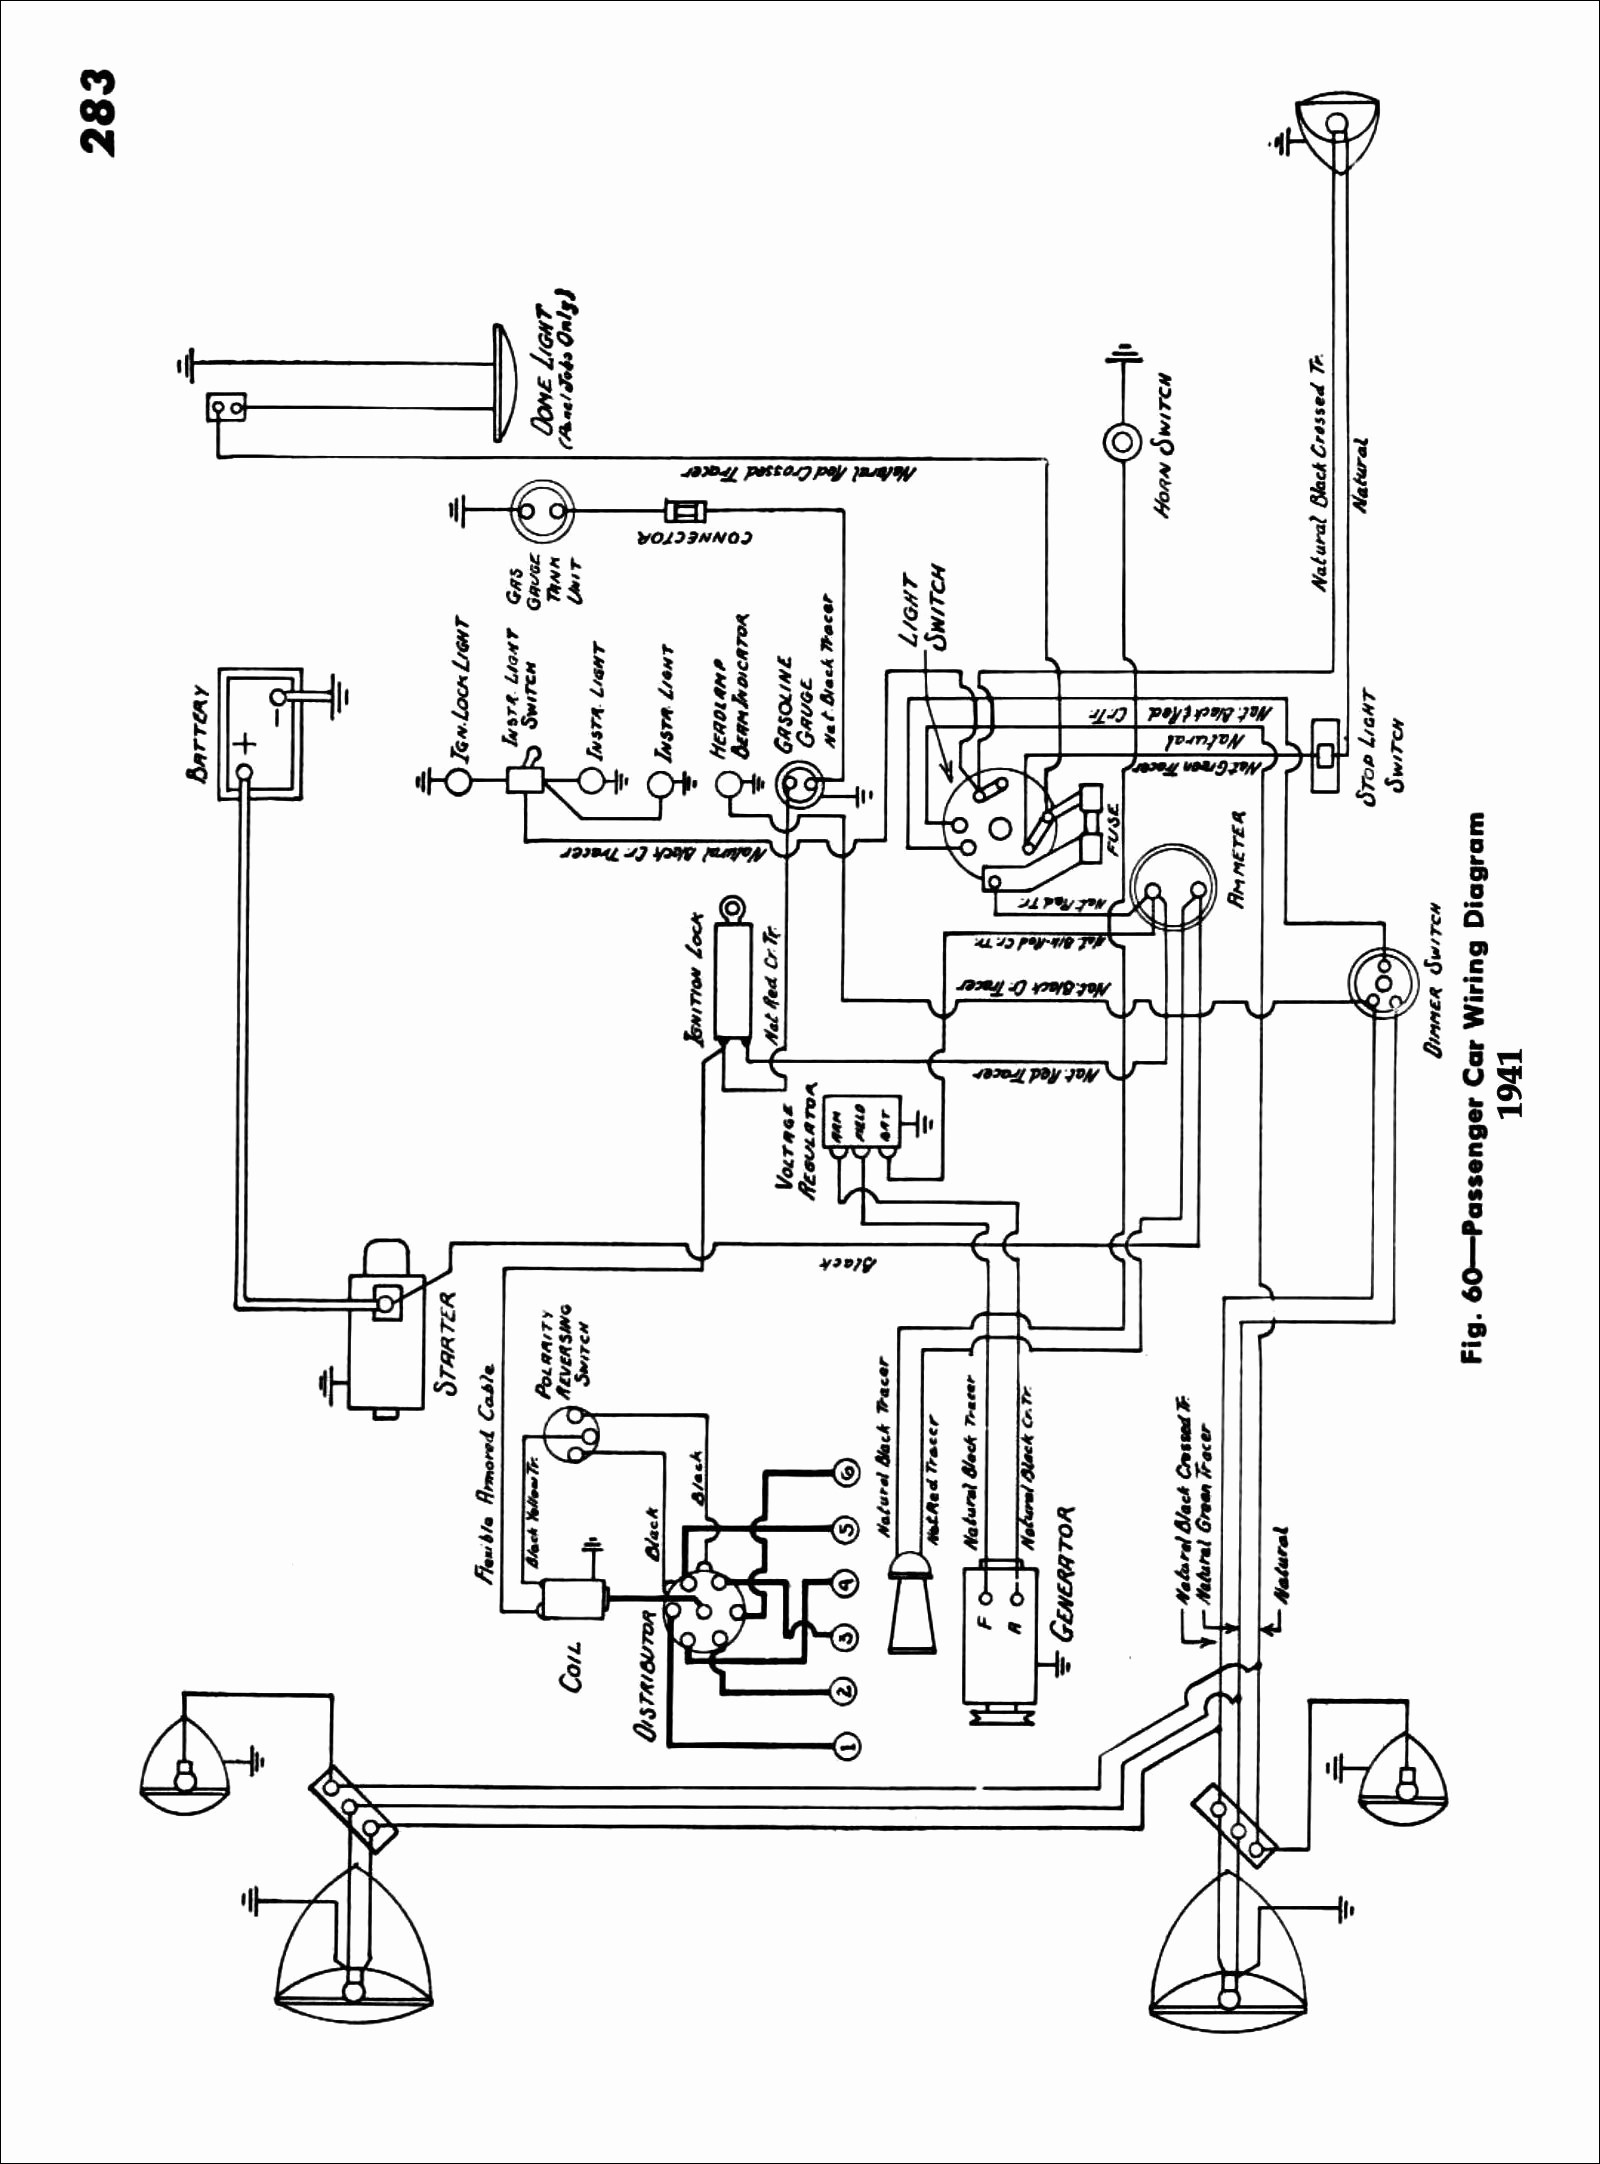 hight resolution of oliver 70 ignition wiring diagram block and schematic diagrams u2022 oliver 1650 wiring diagram ford